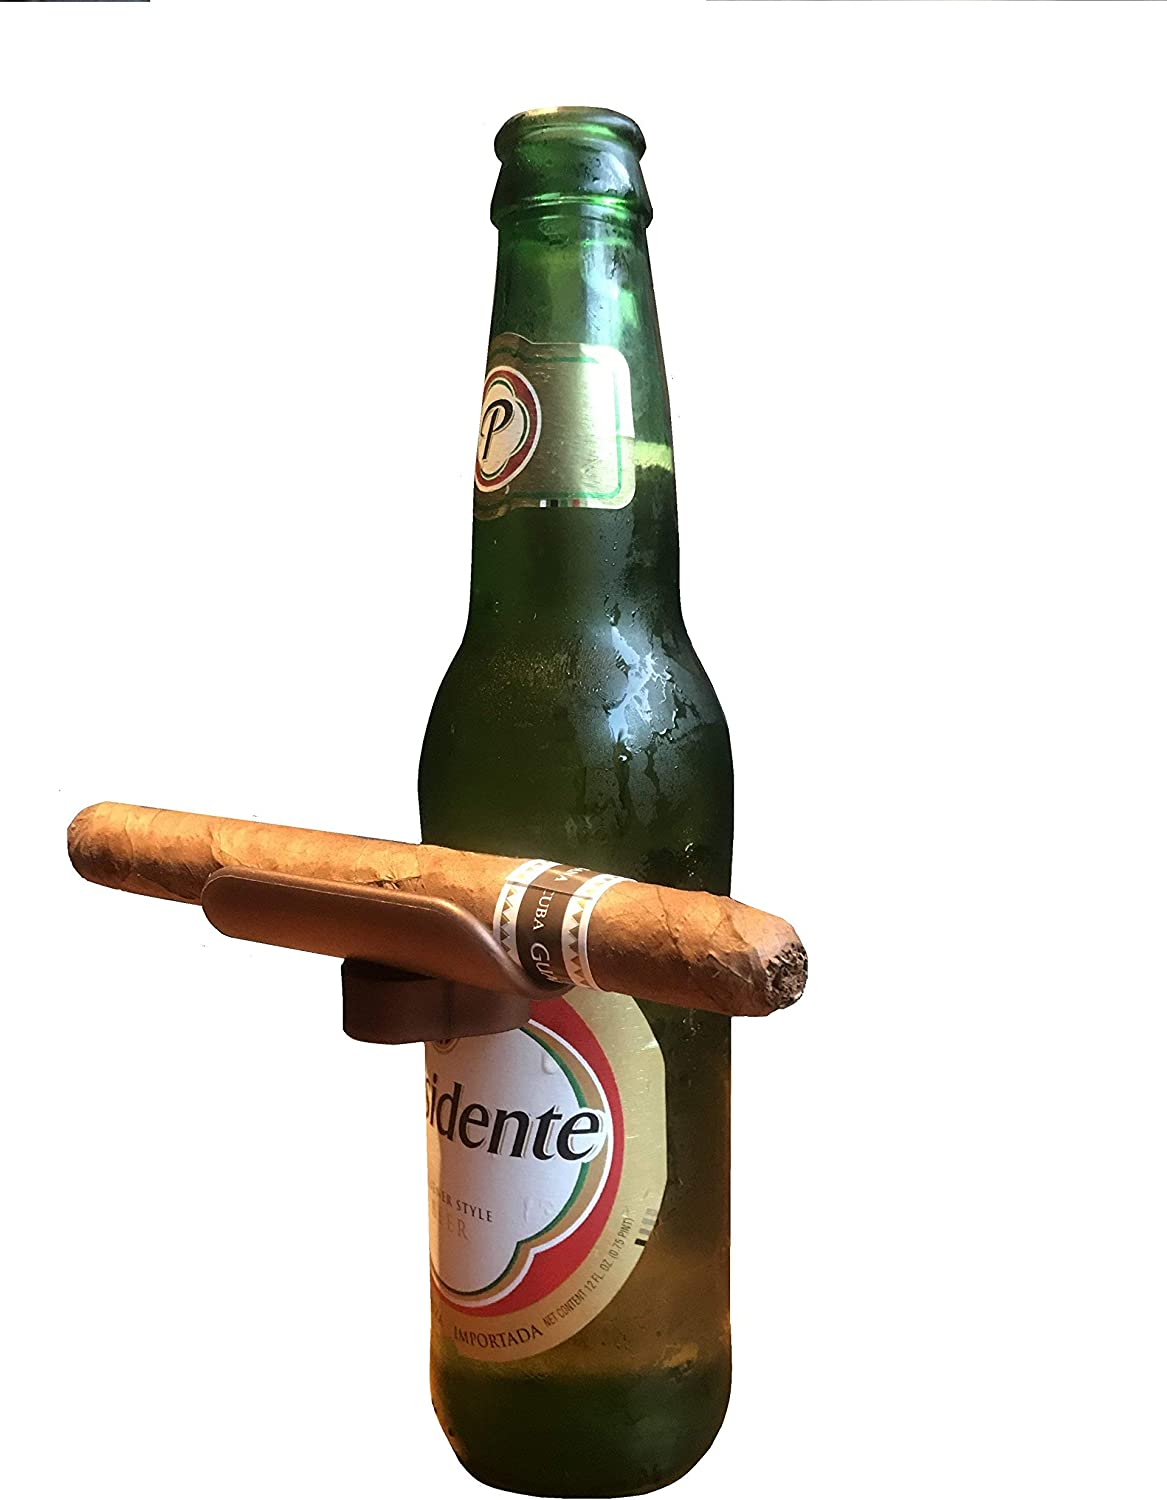 CigarzUp Cigar Holder. Bronze. The Clip On Cigar Accessory Snaps to Almost Any Bottle, Can or Glass to Keep Your Cigar in Place